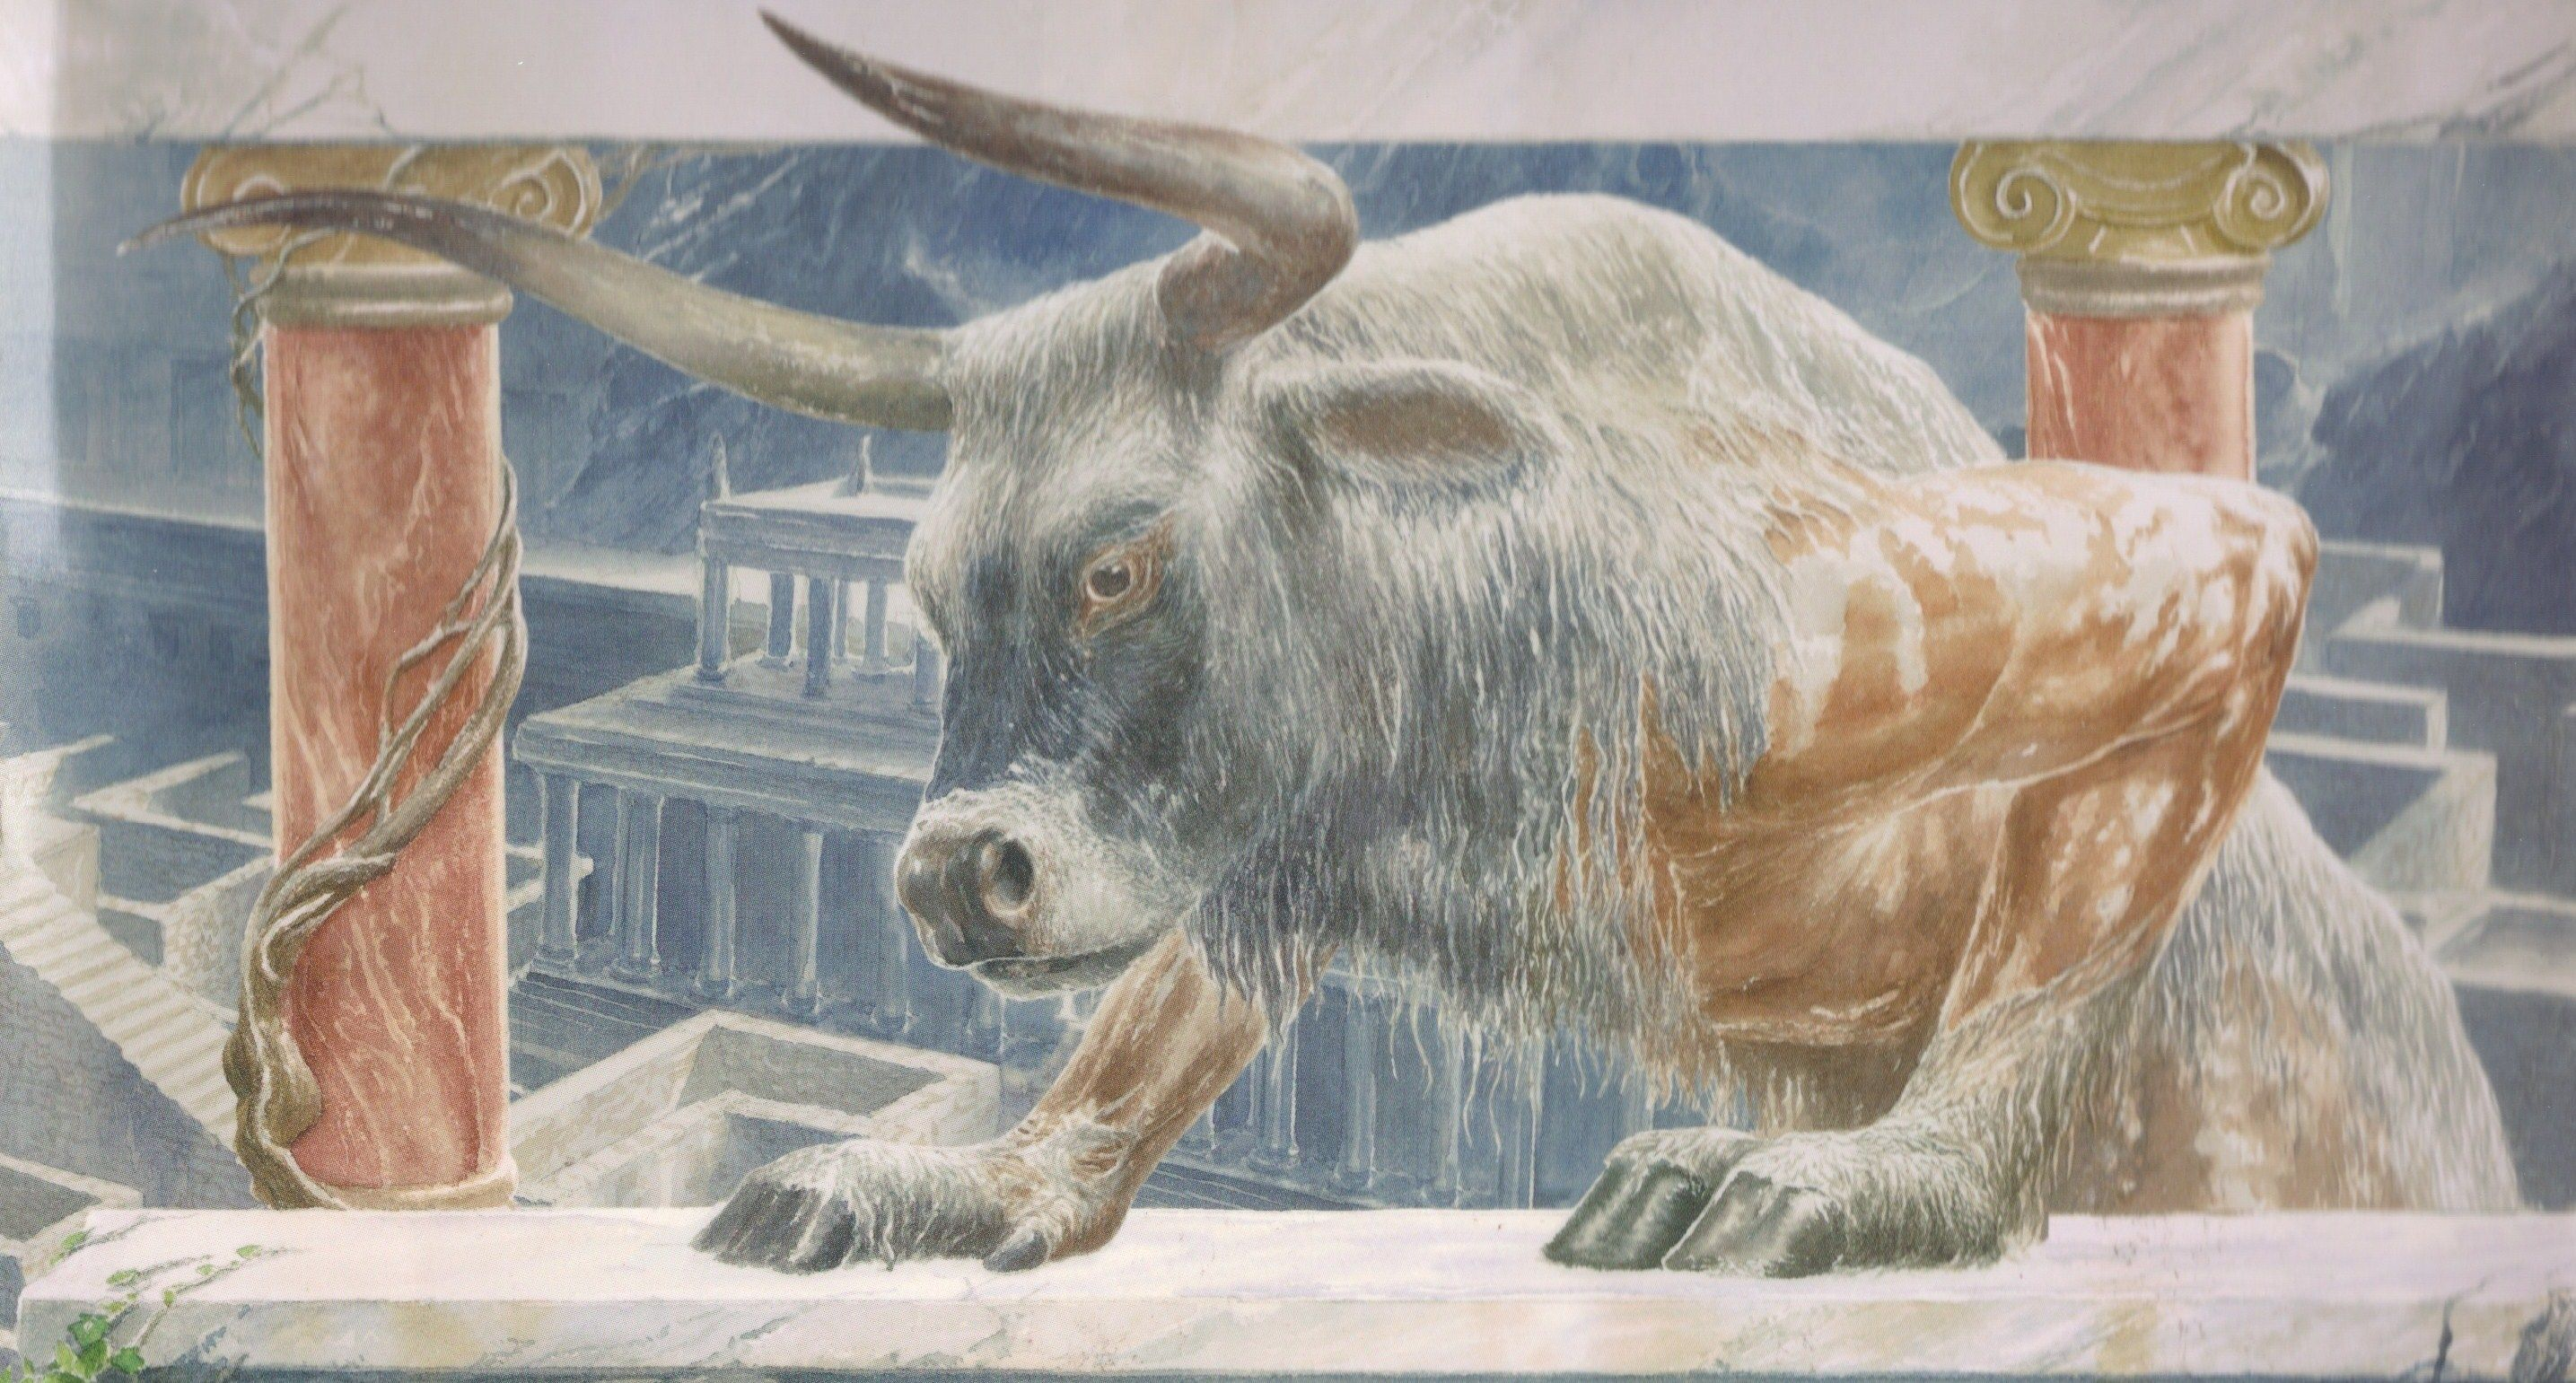 The Minotaur by Alan Lee  (The Labyrinth/Crete/Knossos